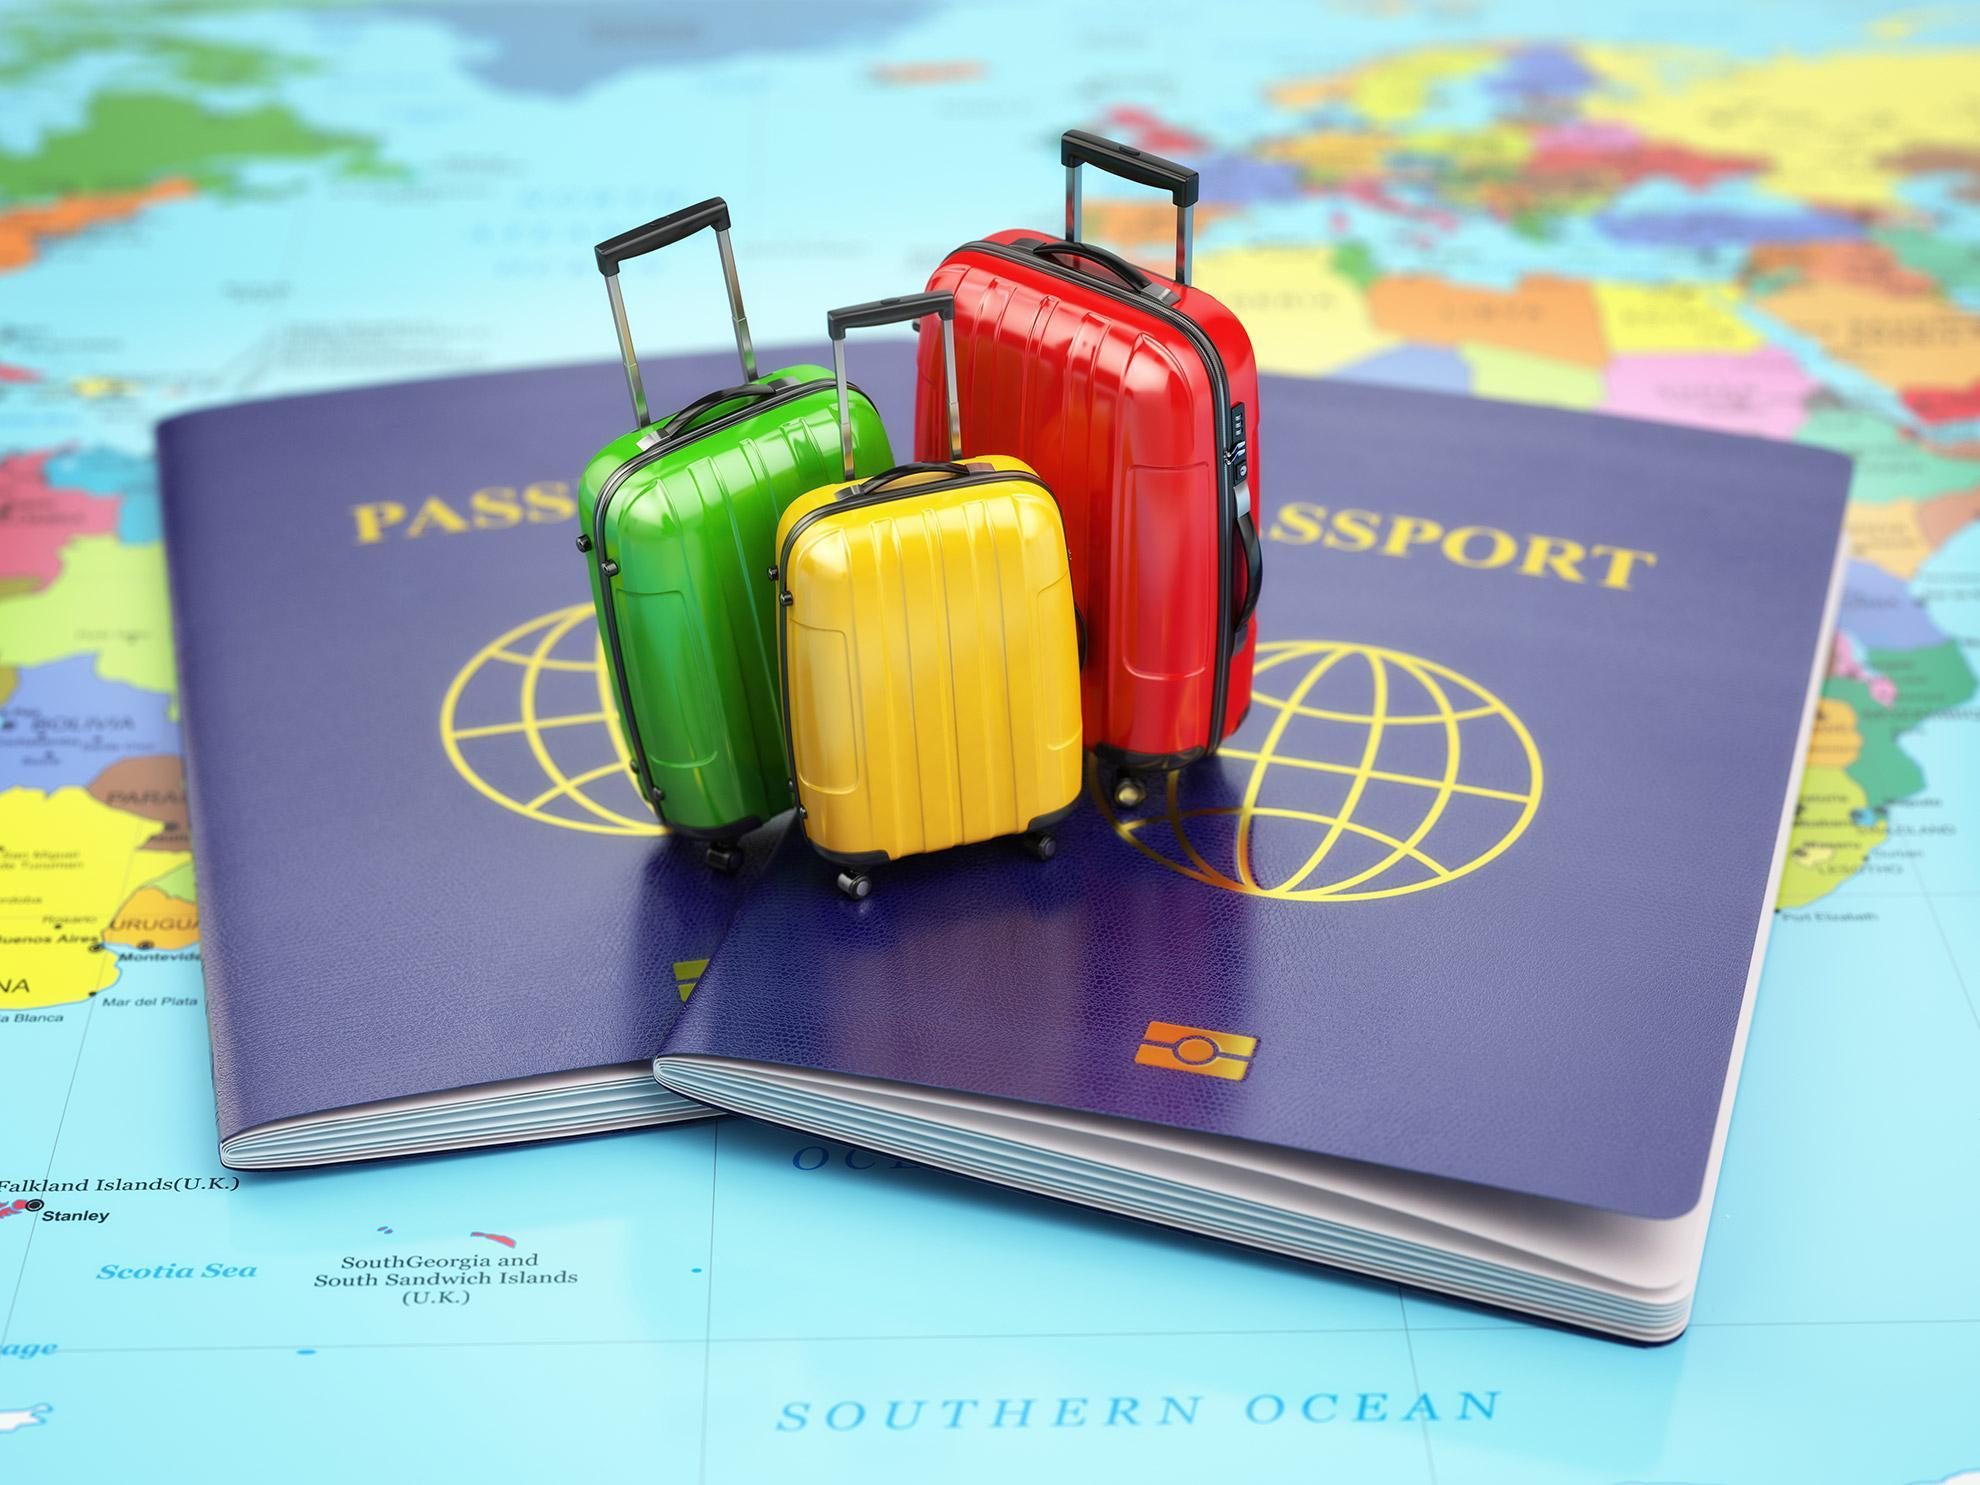 How to Apply for an East African Visa - Travel to Africa